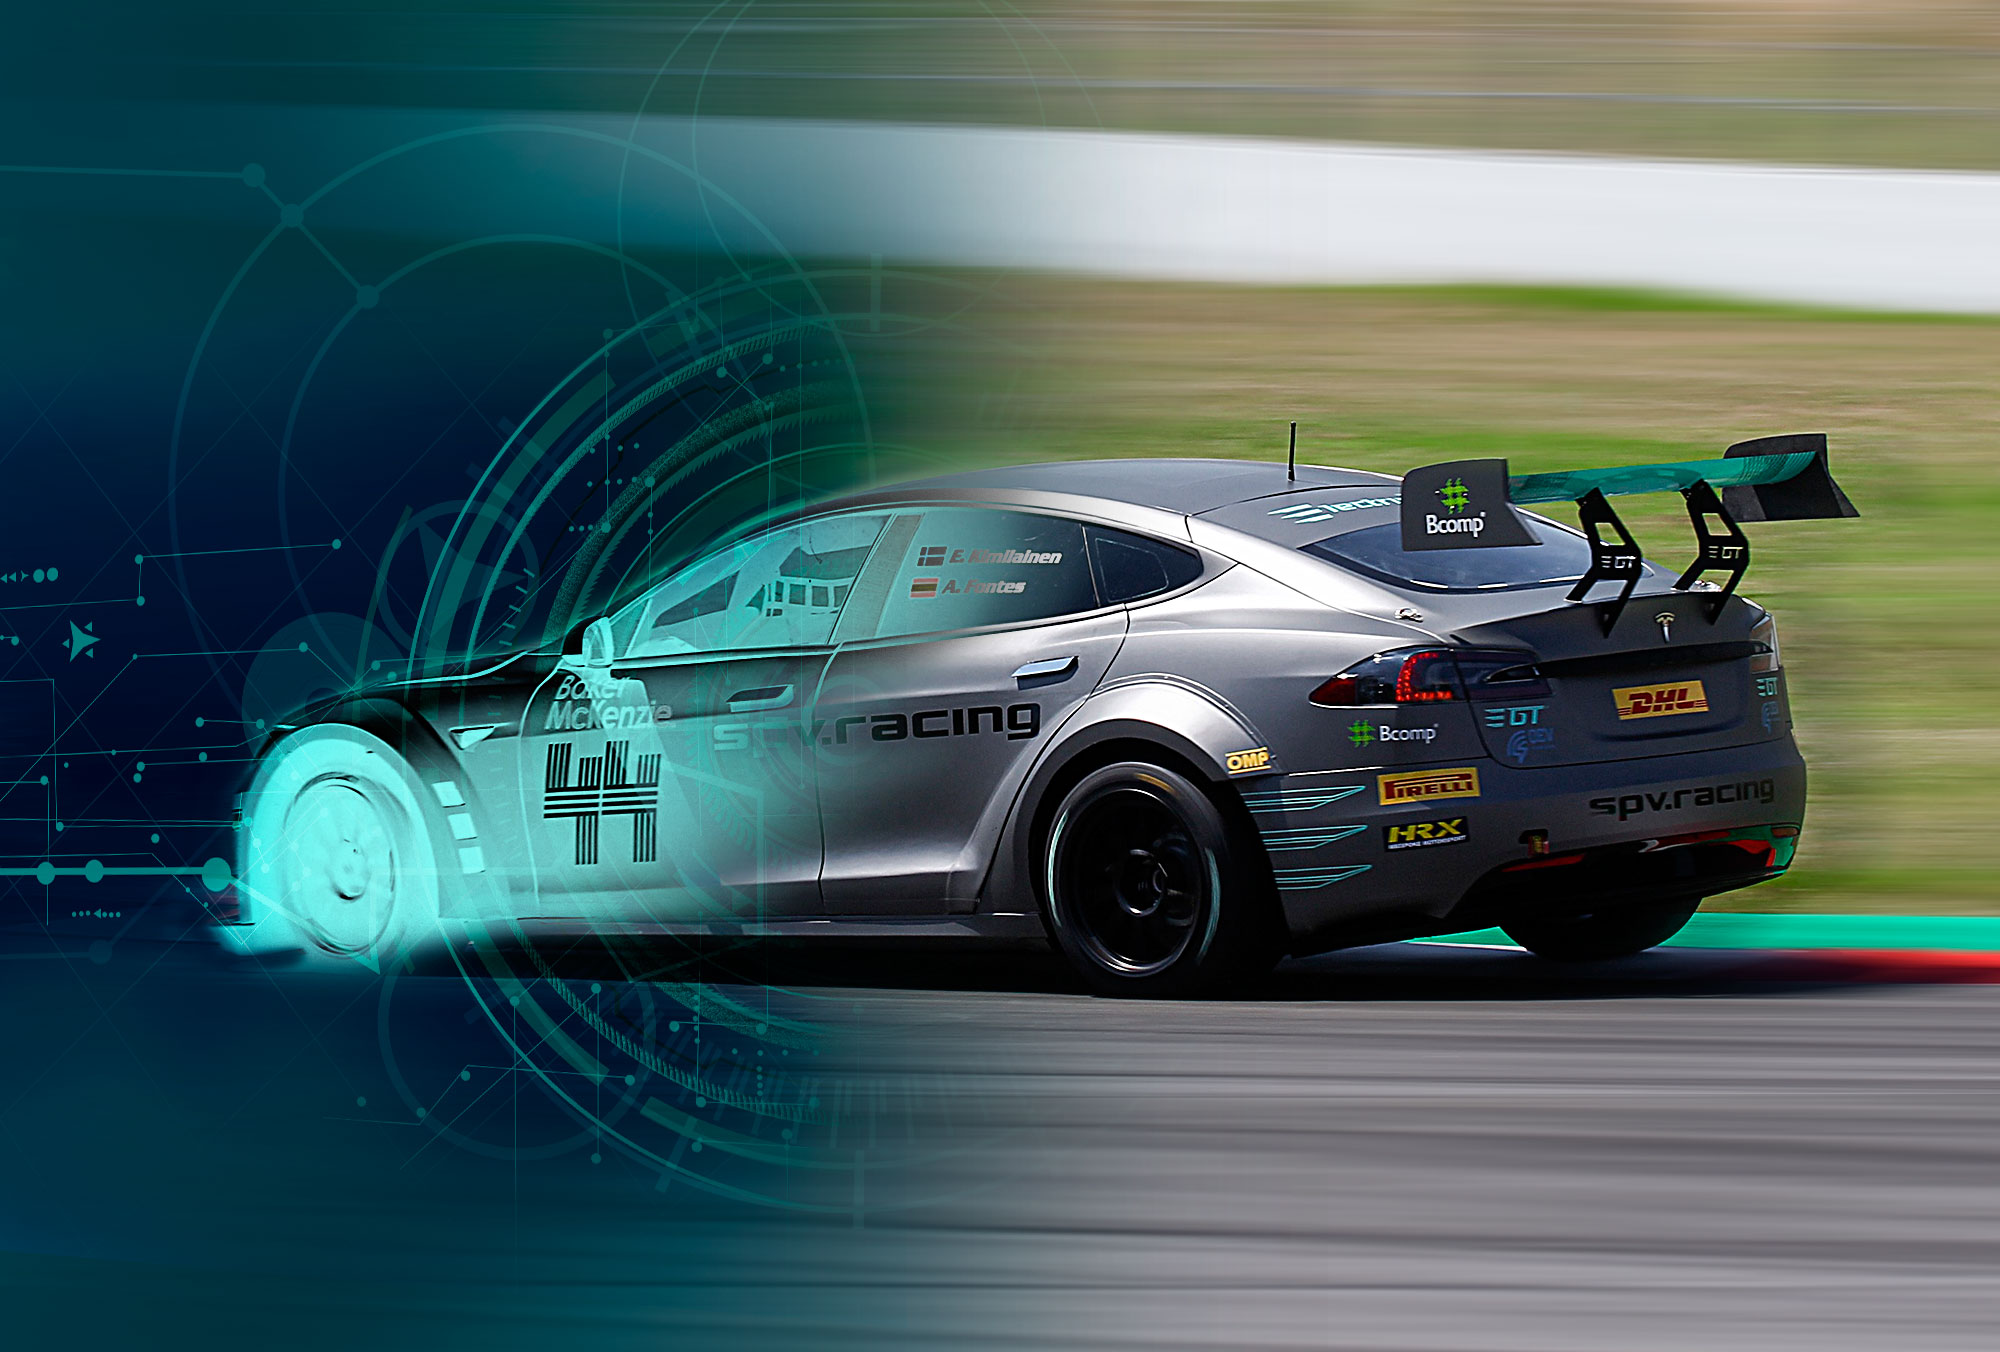 ELECTRIC GT HOLDINGS PRESENTS FIVE YEAR TECHNICAL ROADMAP   From season four, the race cars will have up to 825kW (1,122bhp) and accelerate from 0-100 km/h in 1.7s with a top speed of 380 km/h.   Read More